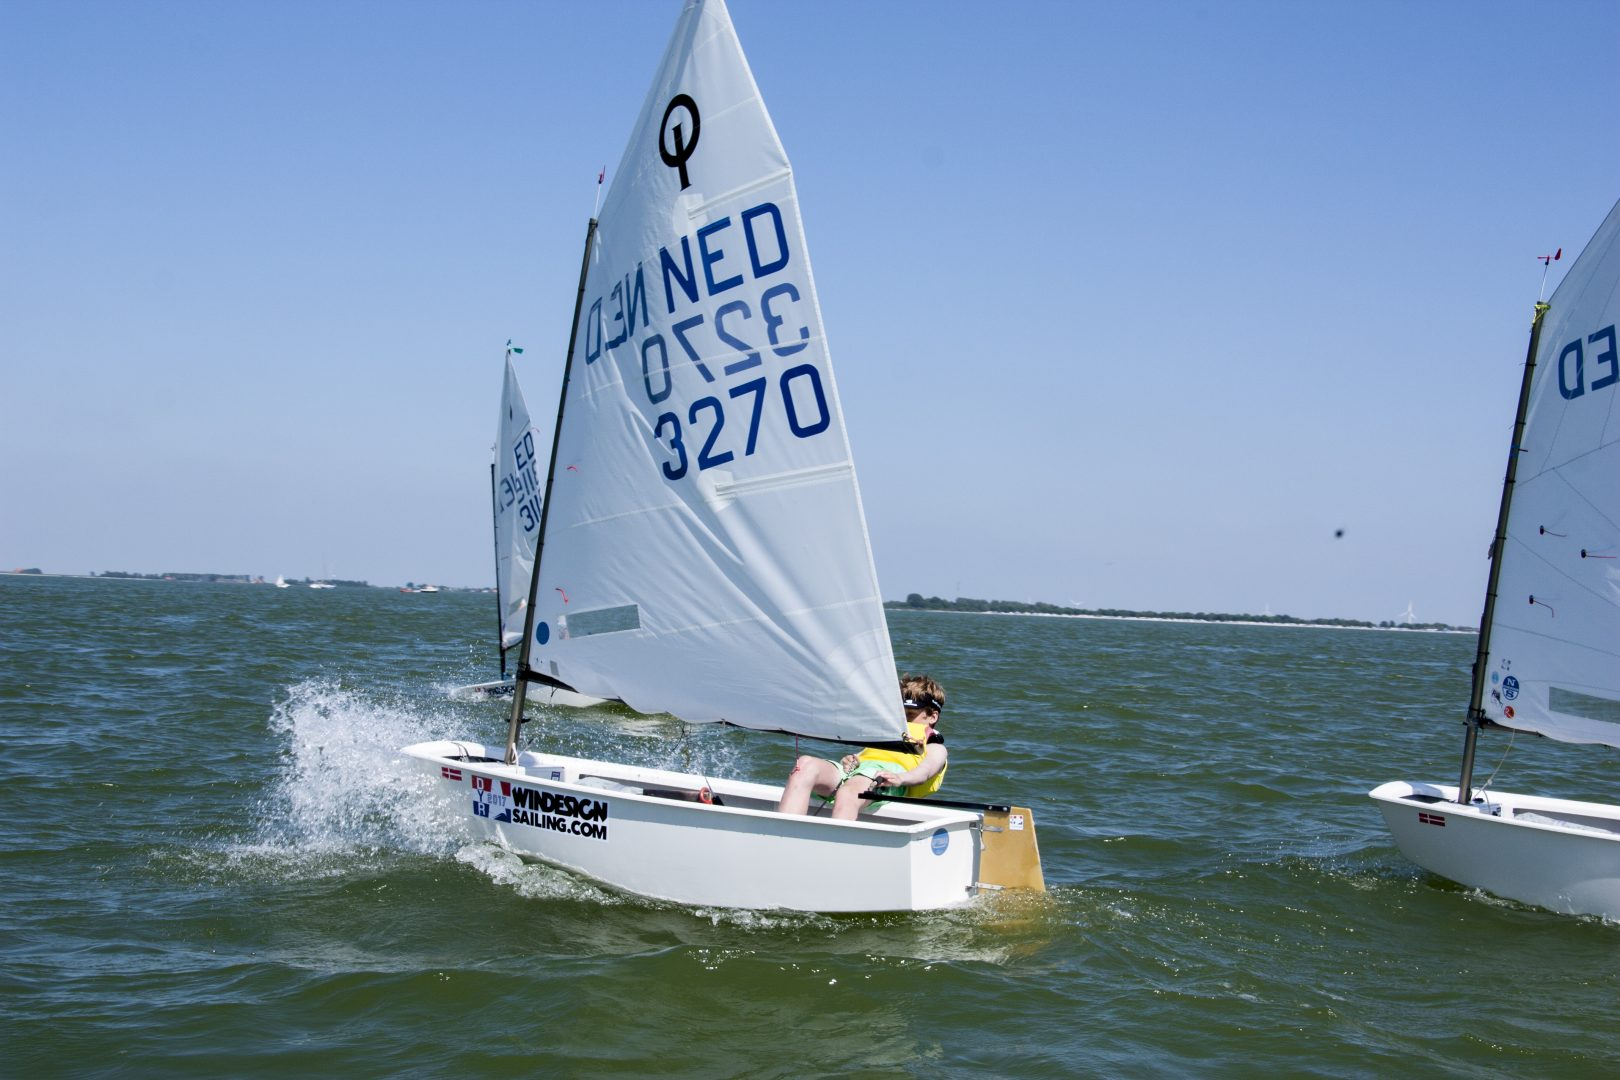 Windesign partner of United 4 Sailing